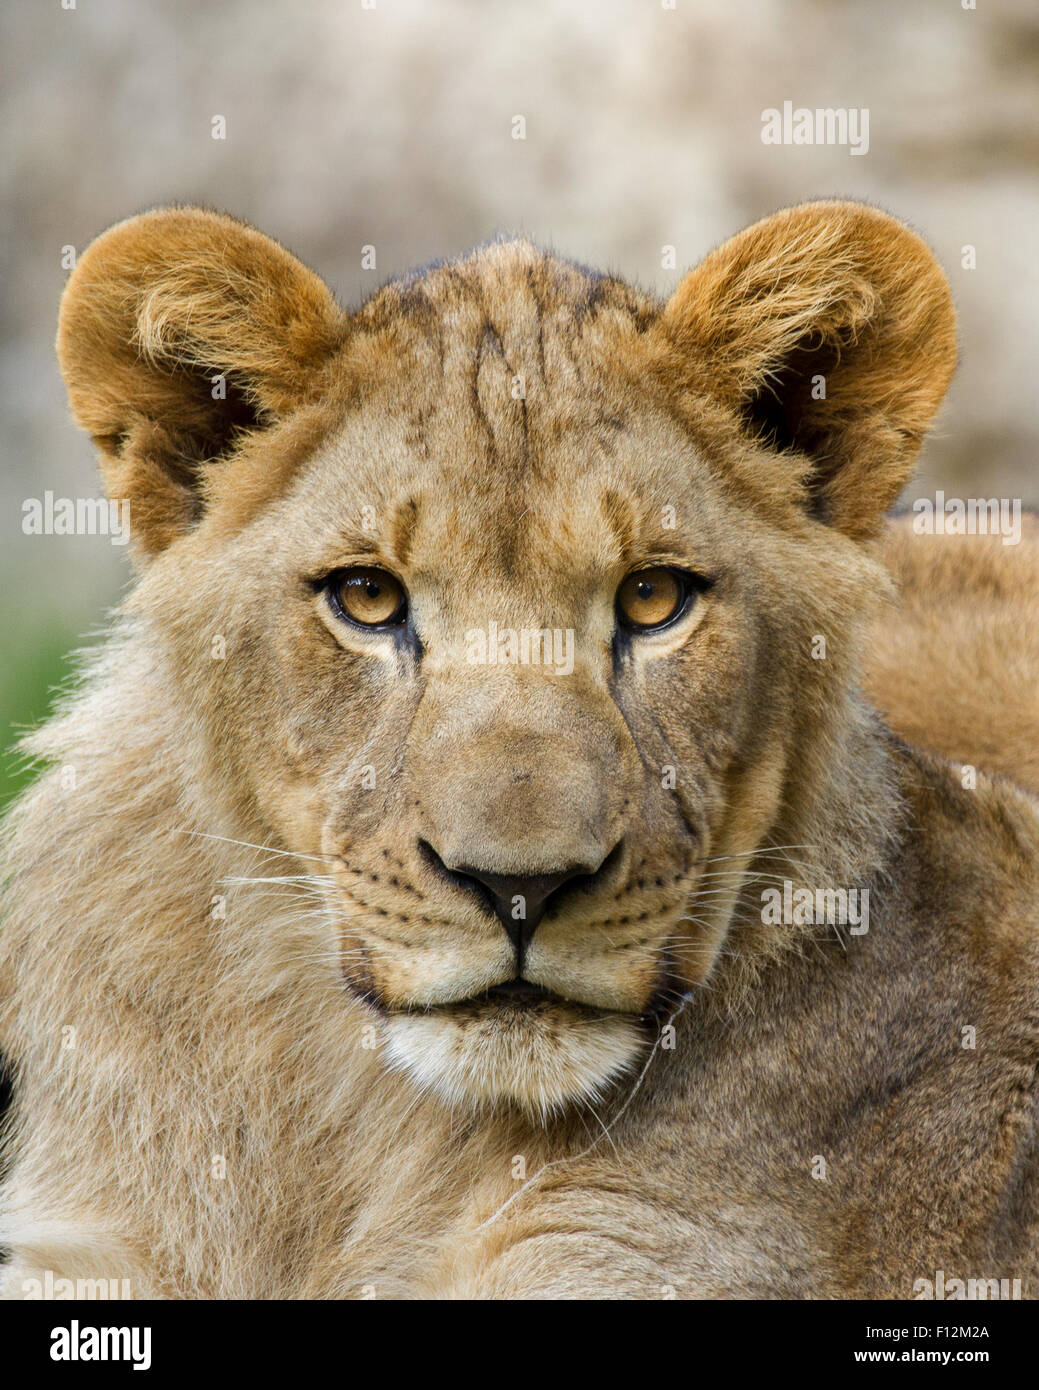 A portrait of a young lion roughly 1 year old. - Stock Image